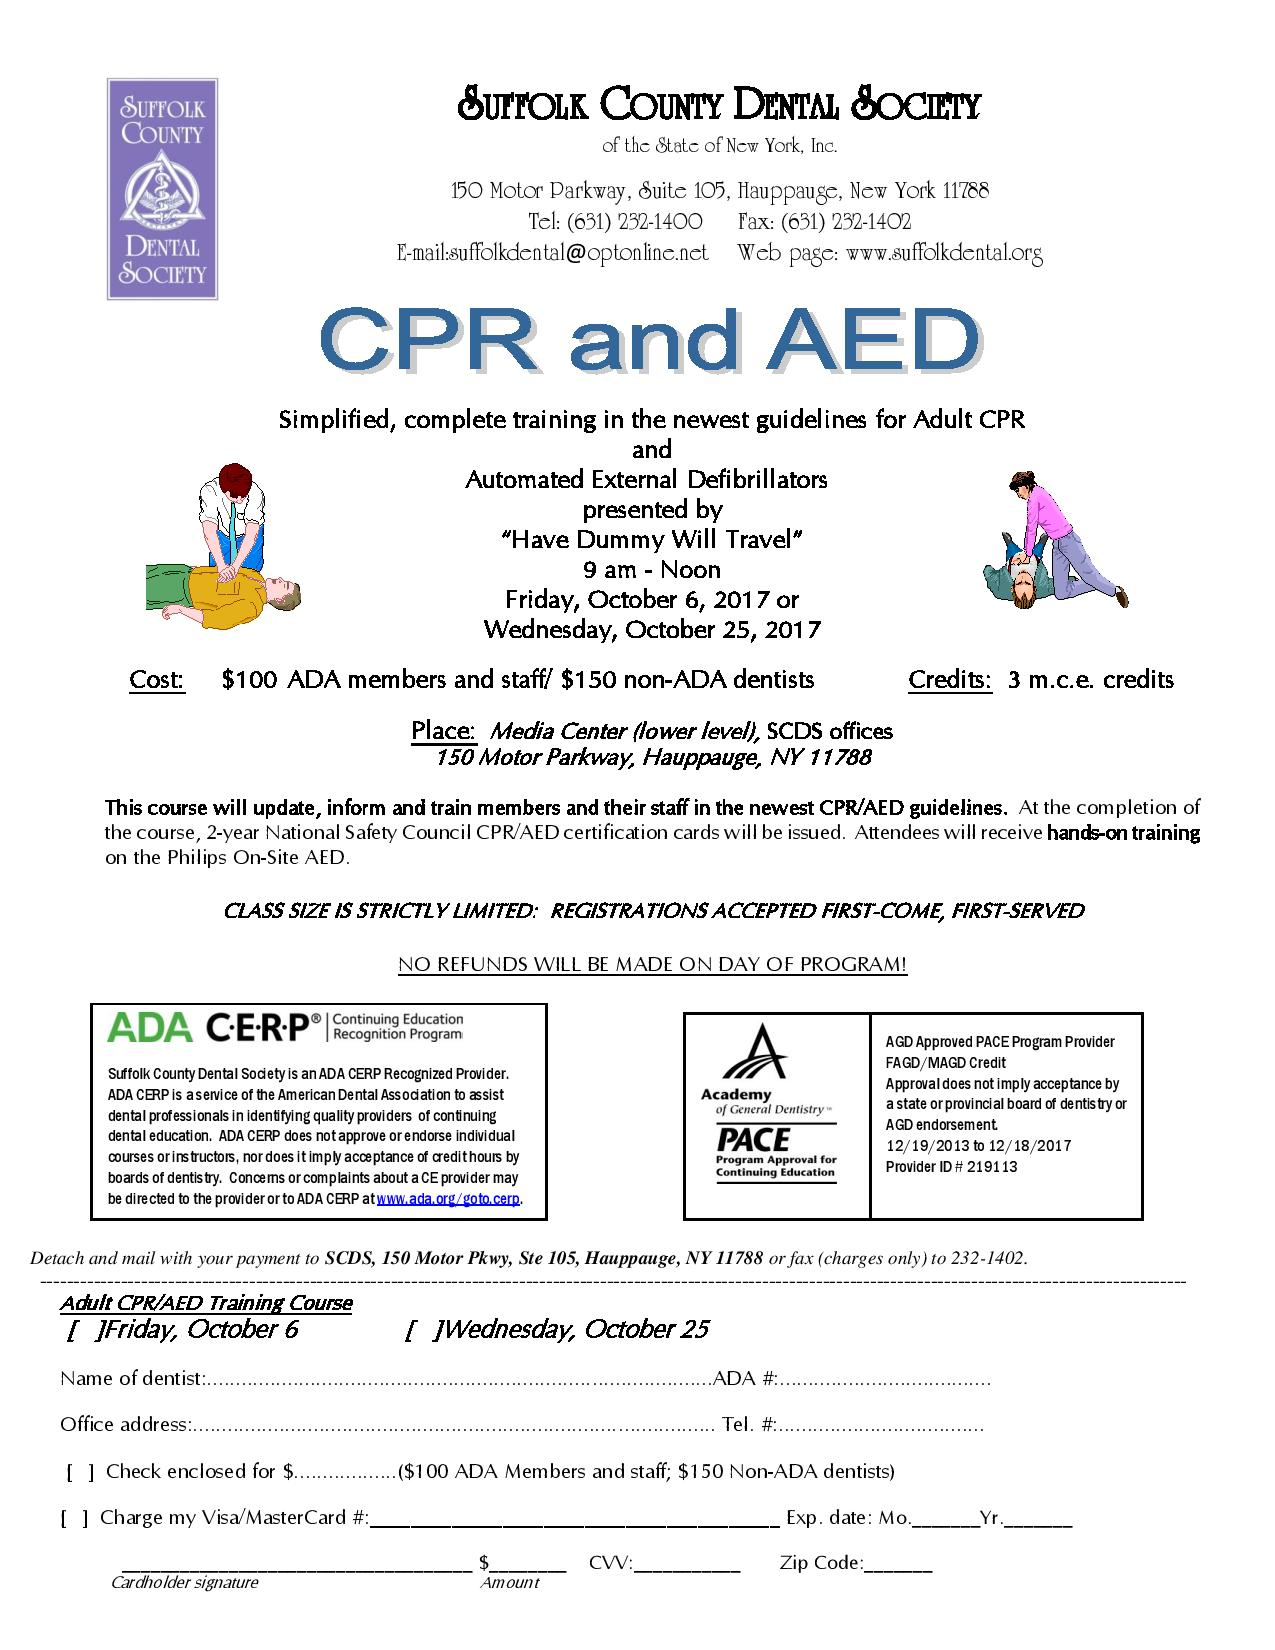 Cpr aed training wednesday october 25 2017 tickets wed oct description xflitez Gallery